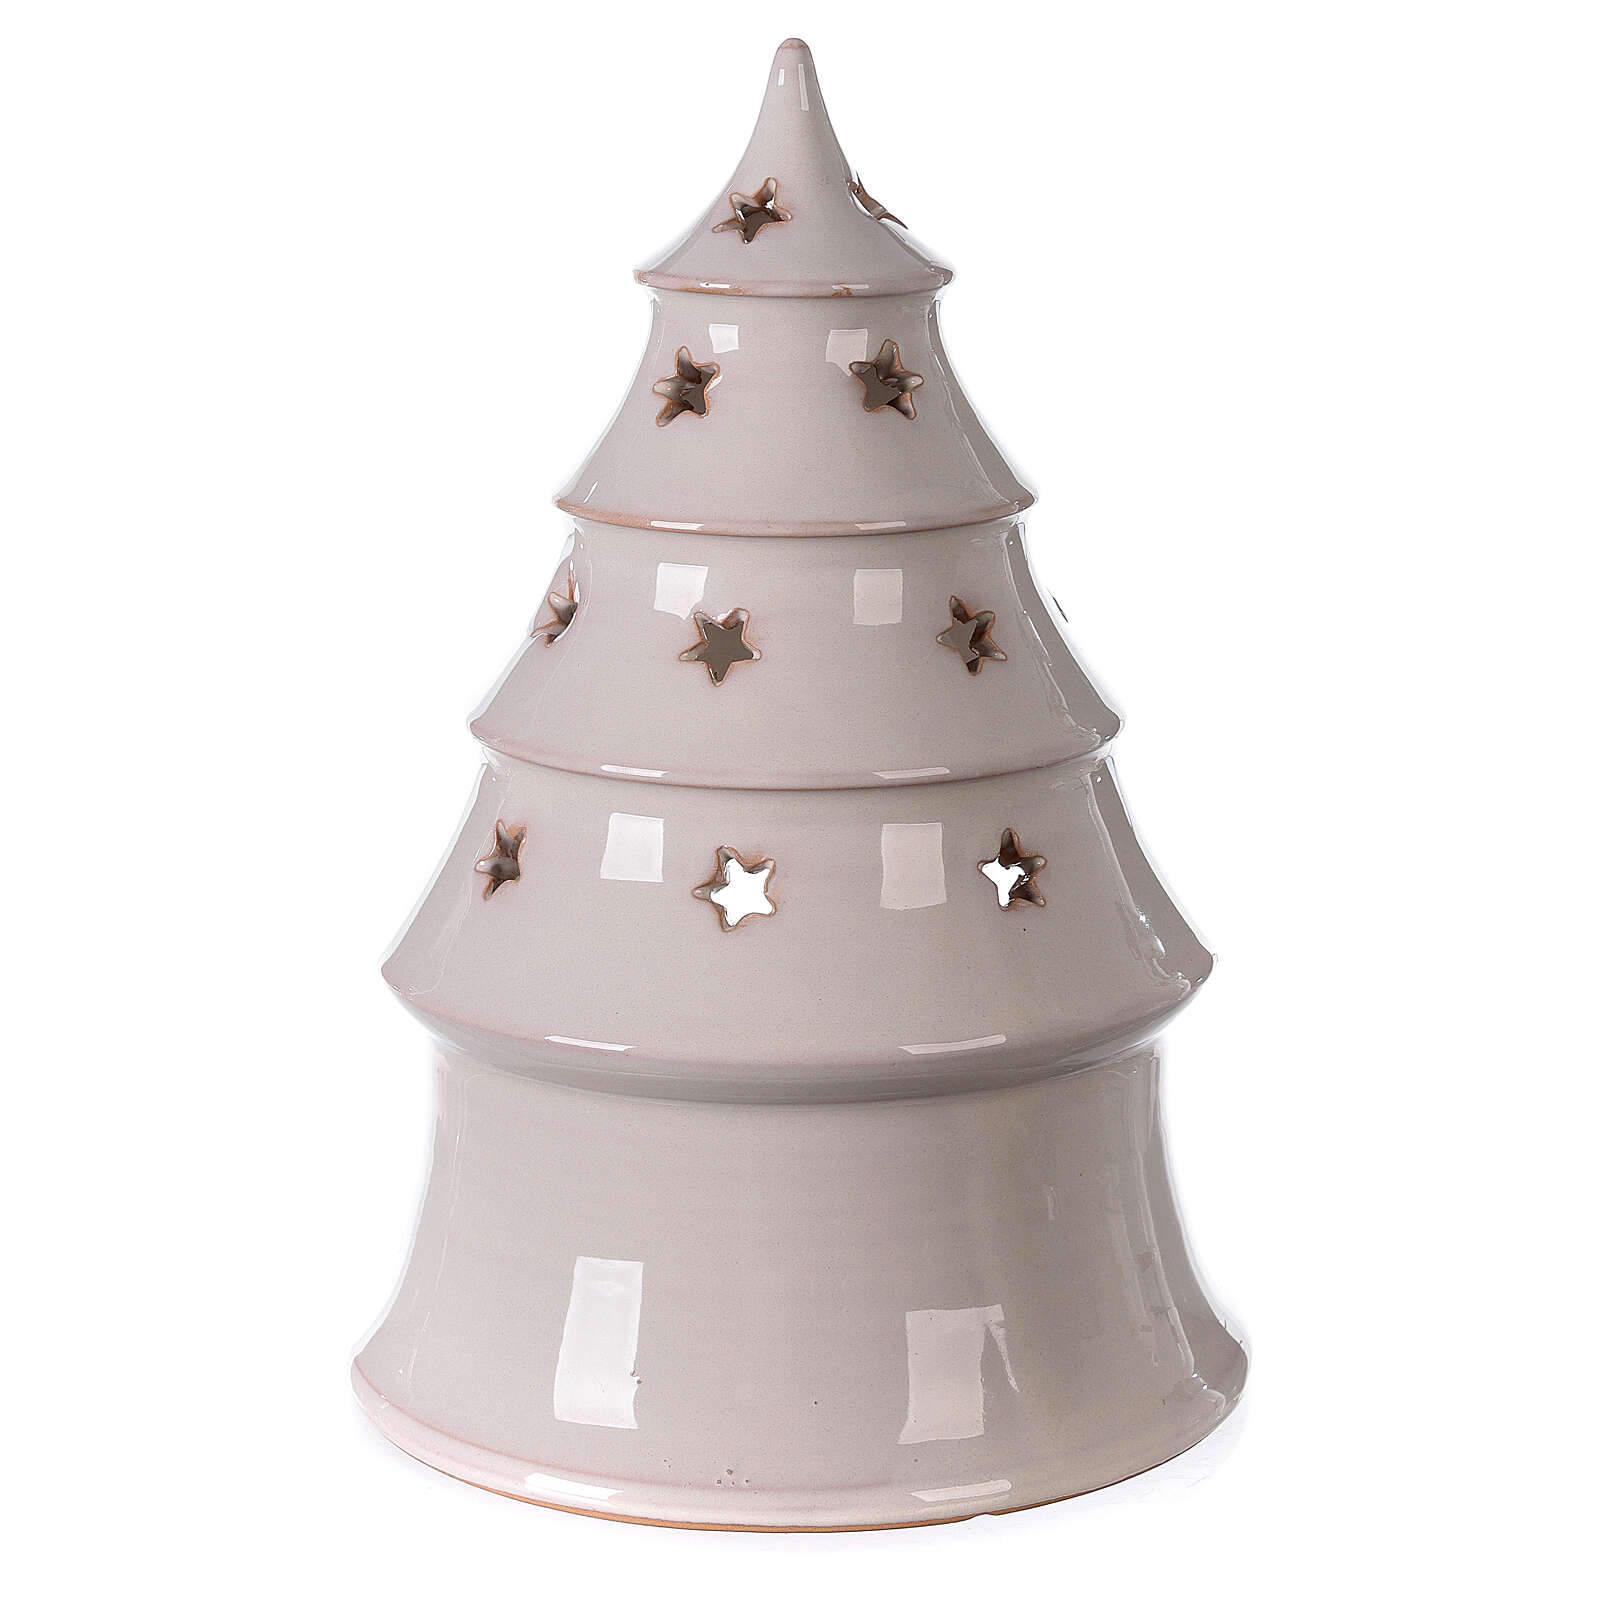 Holy Family in Christmas tree candle holder in white Deruta terracotta 25 cm 4